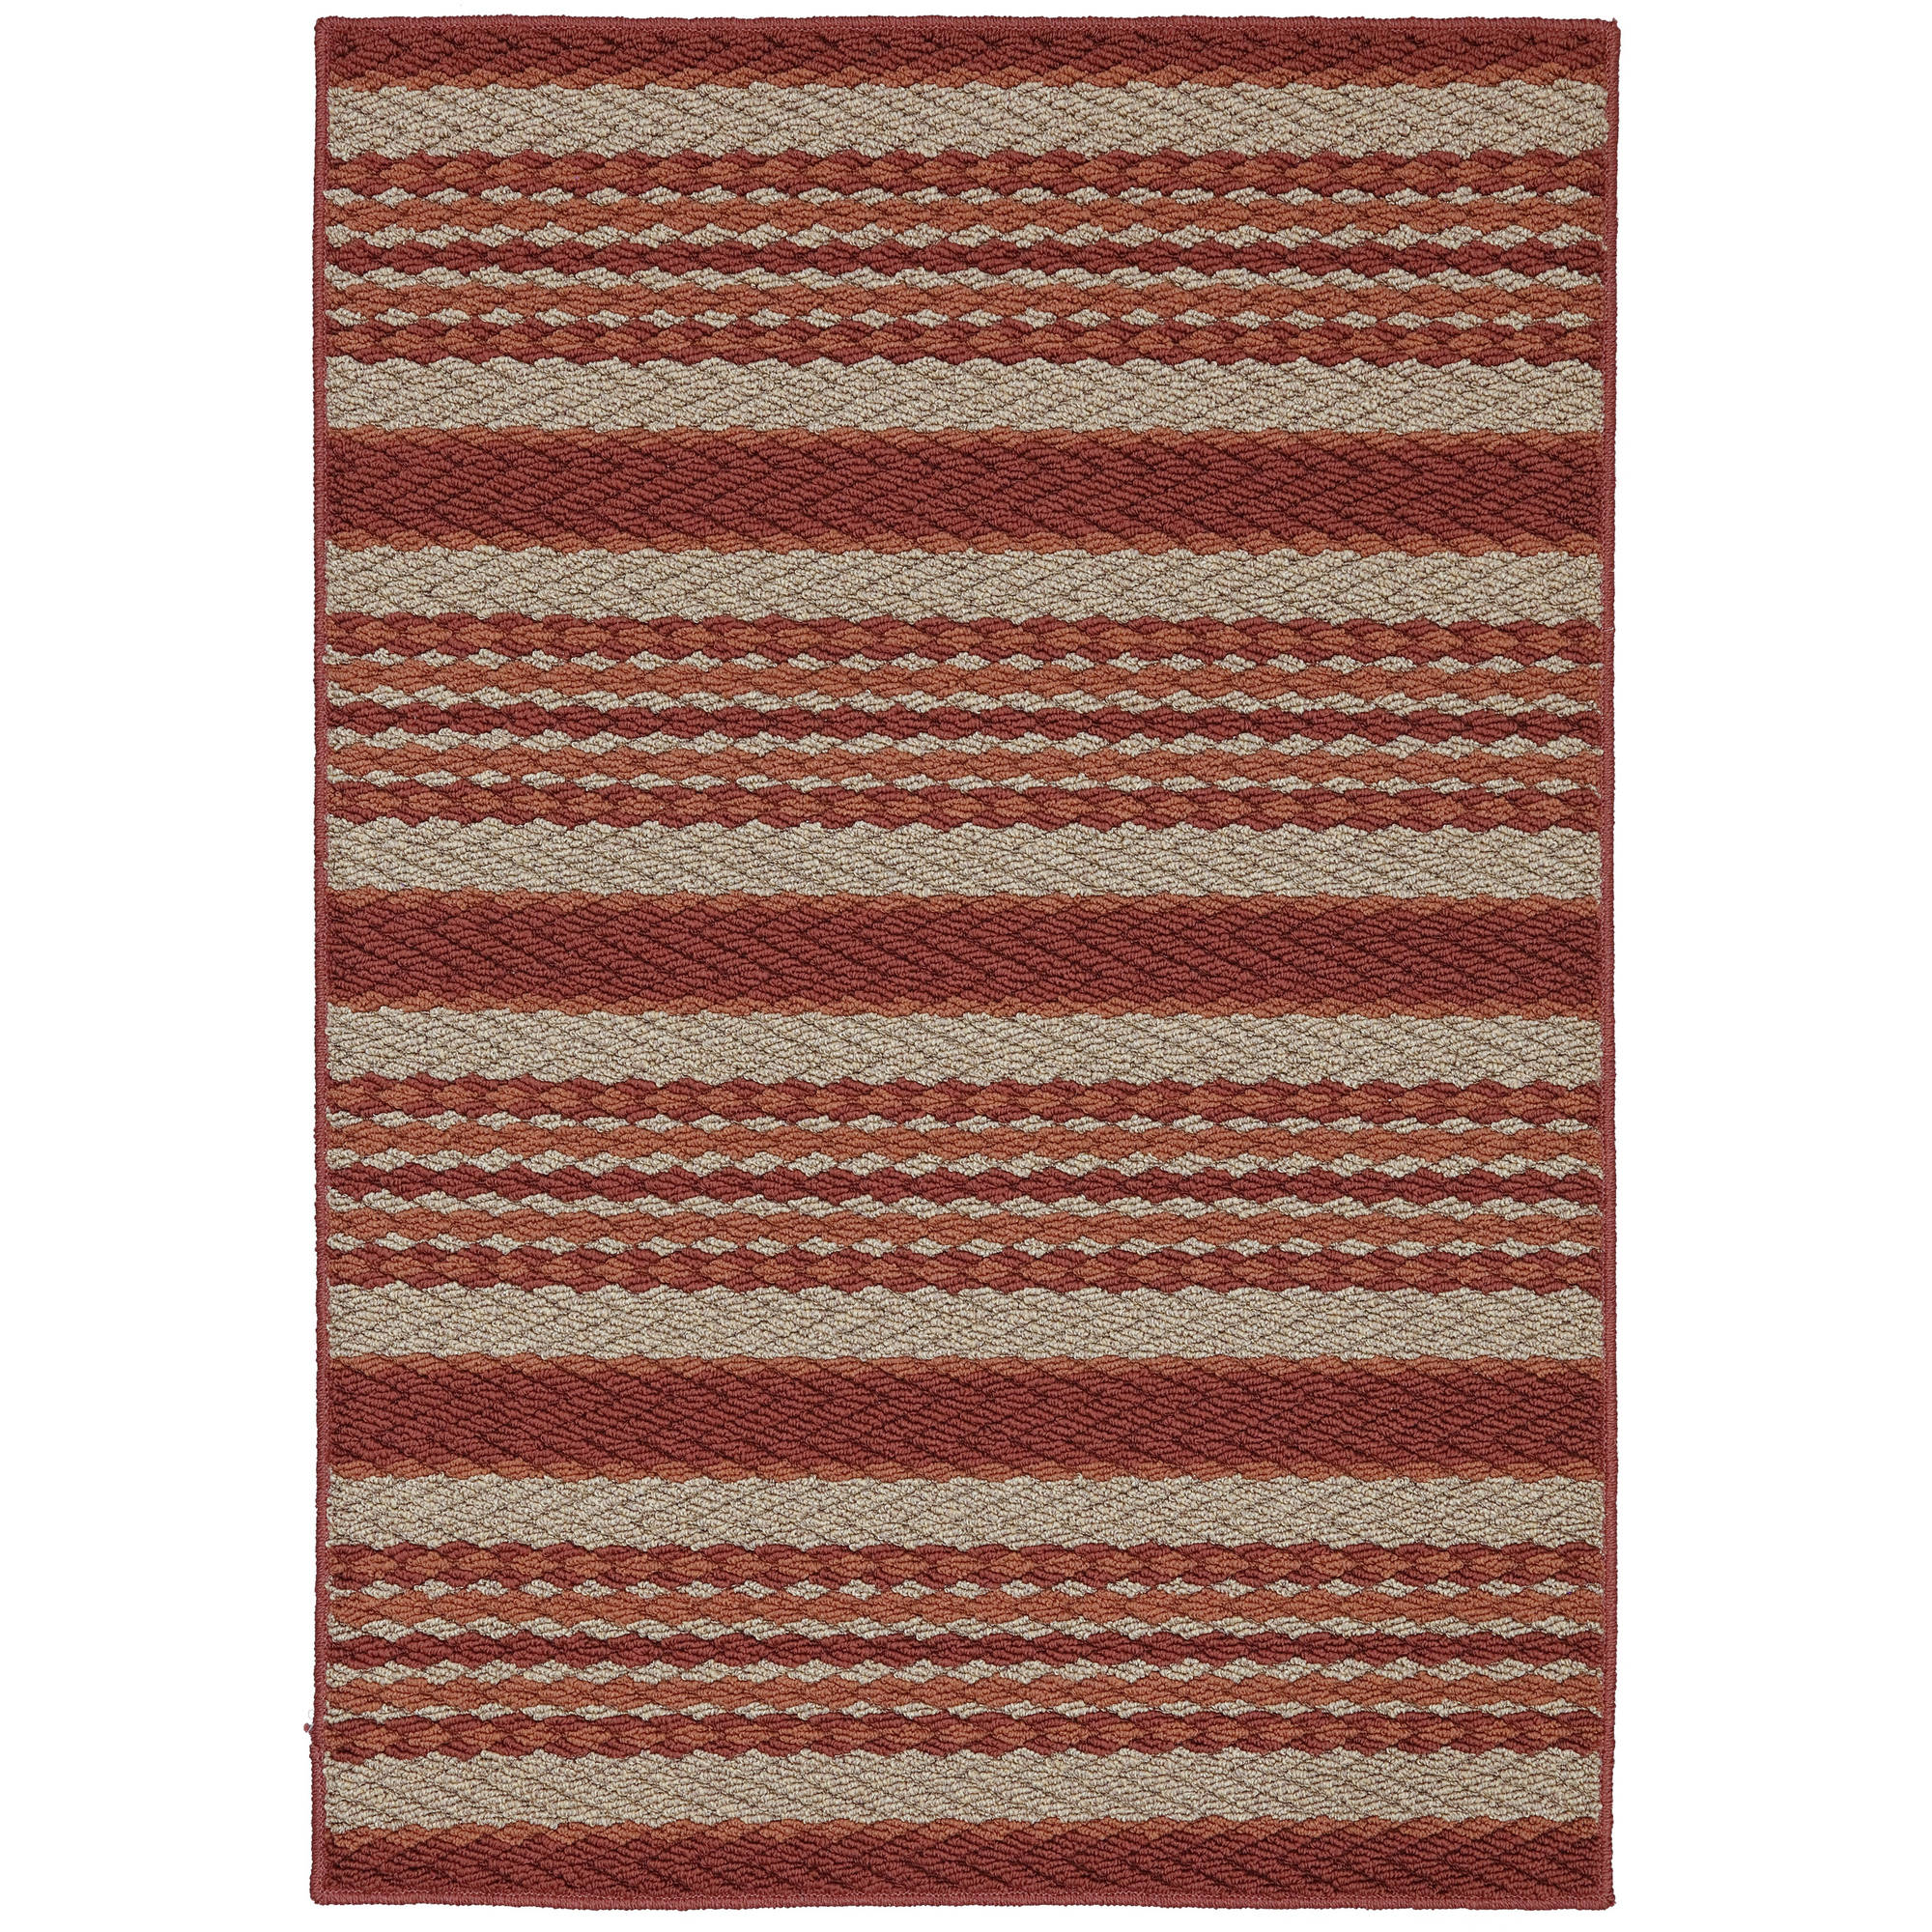 Mohawk Home Seton Stripe Tufted Area Rug, 5'x8'